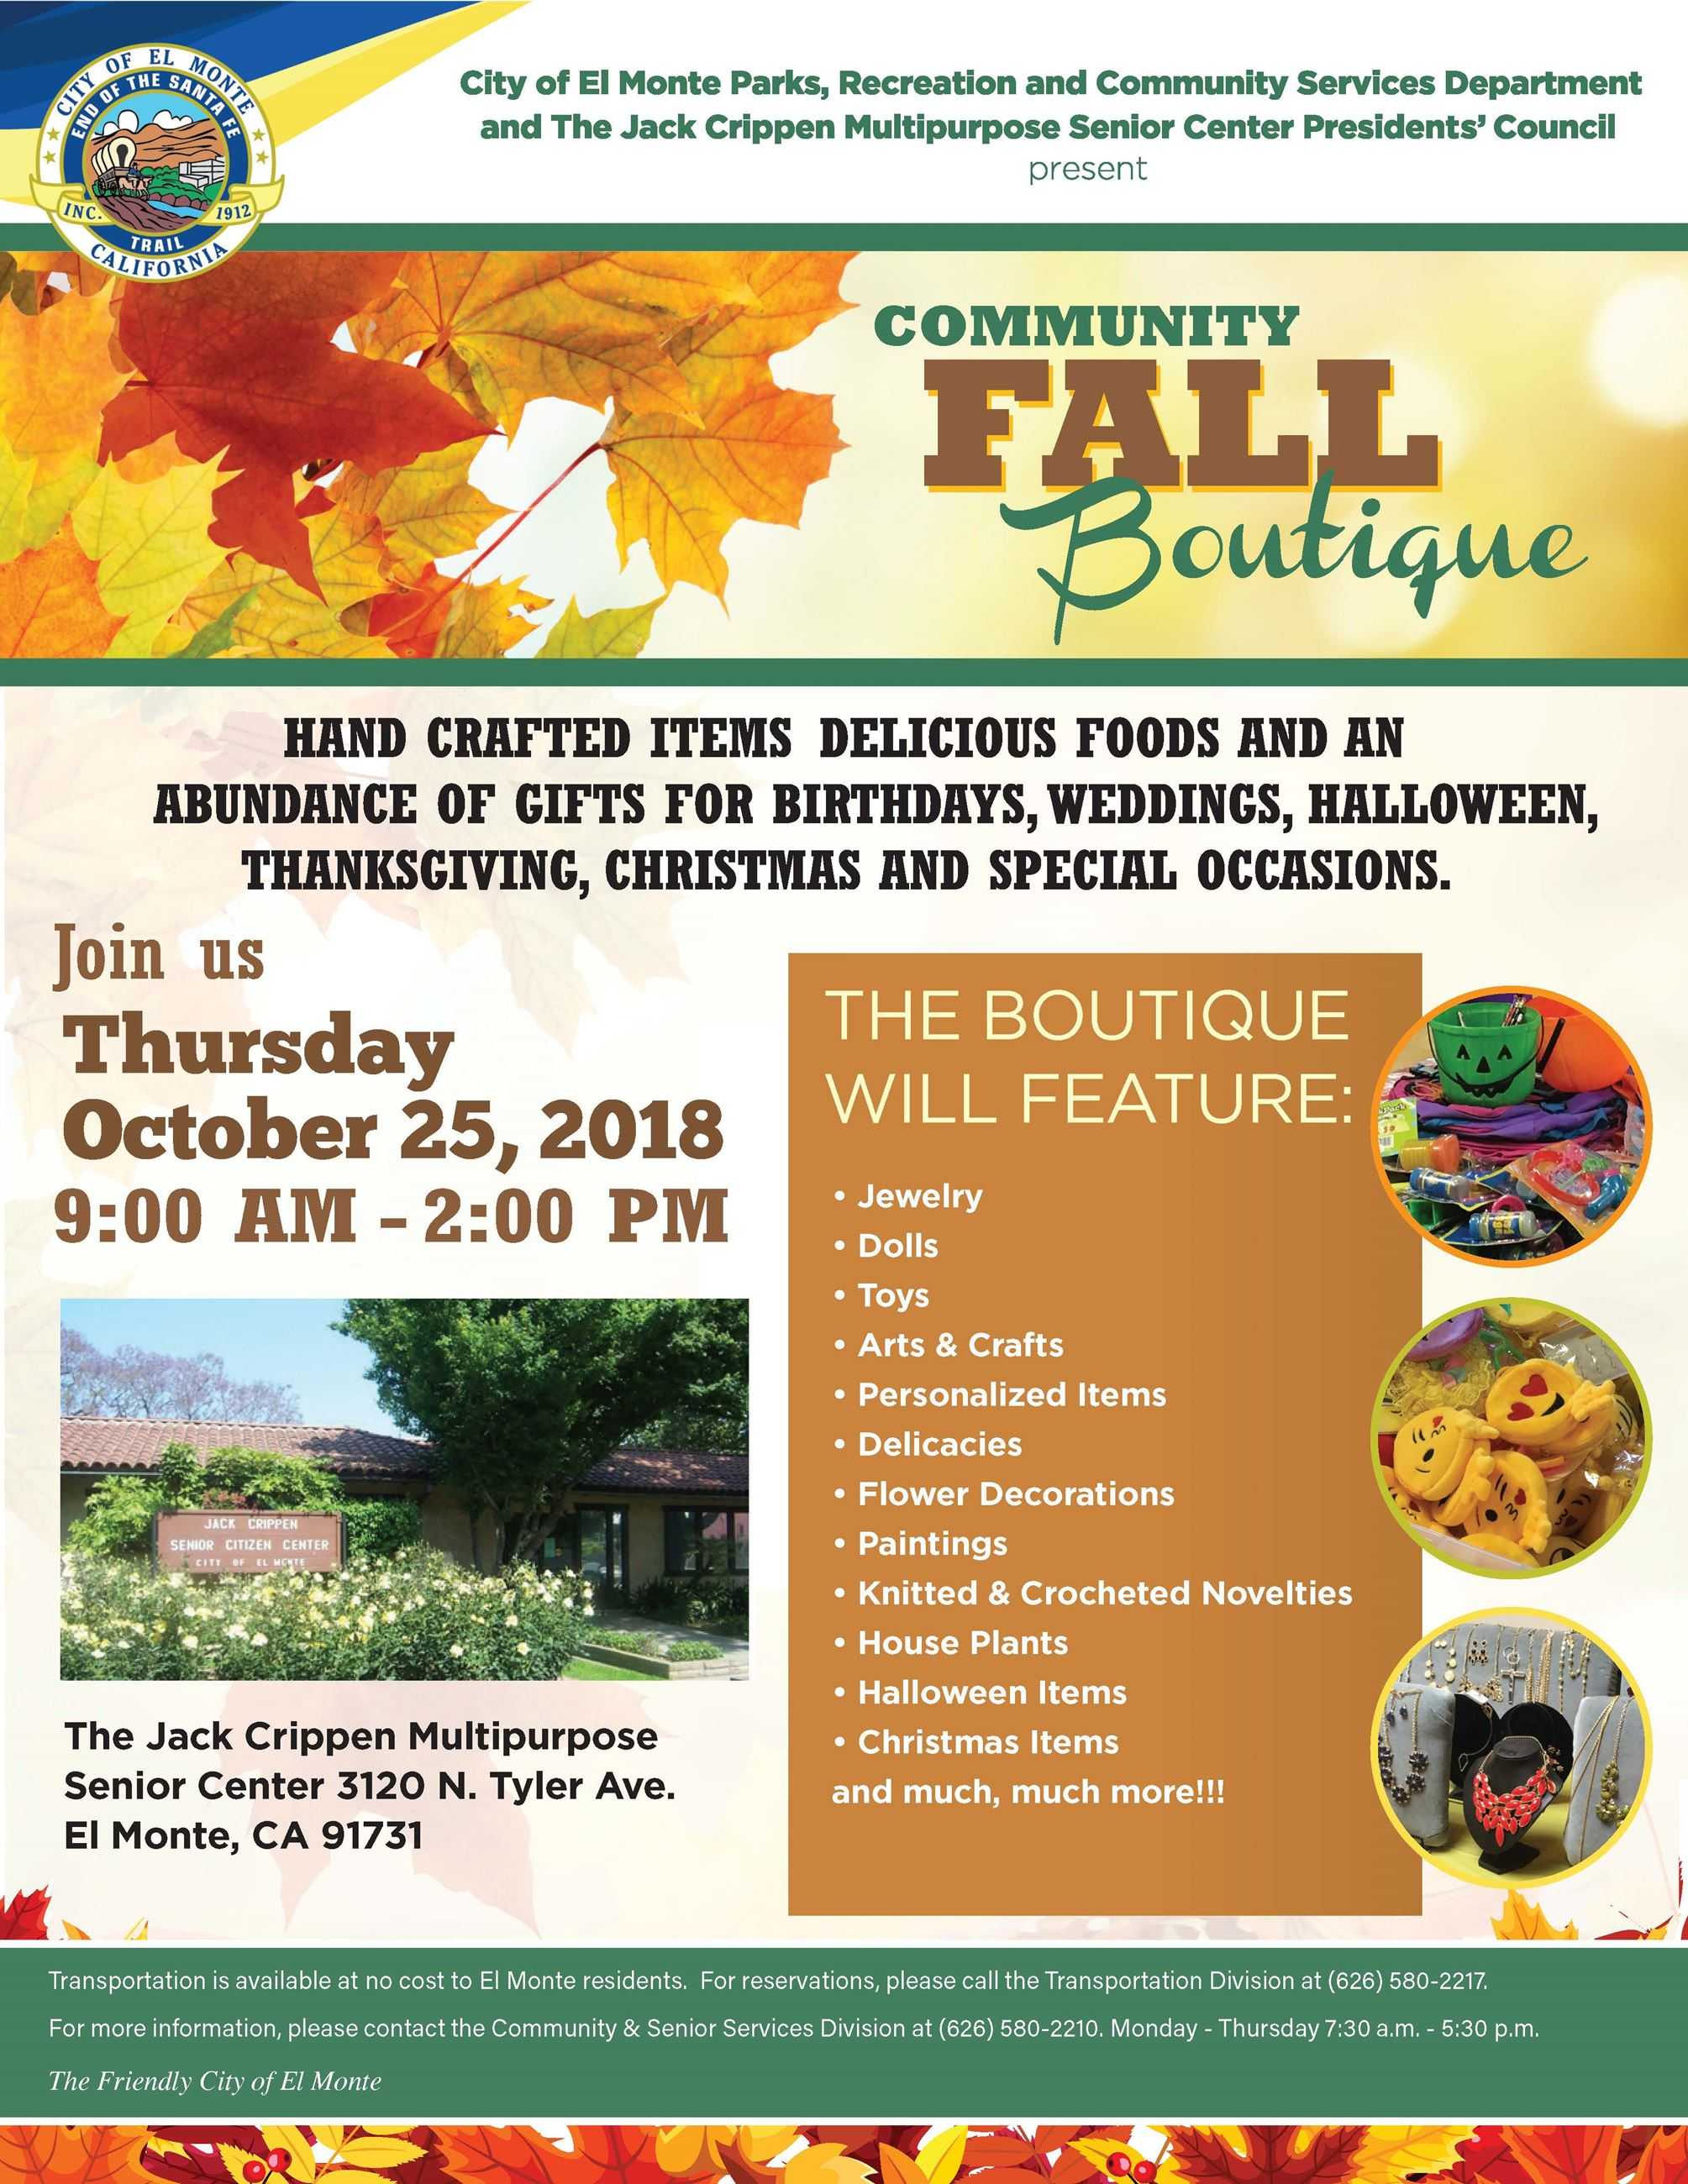 2018_Fall_Boutique_Flyer_01 FINAL (2)